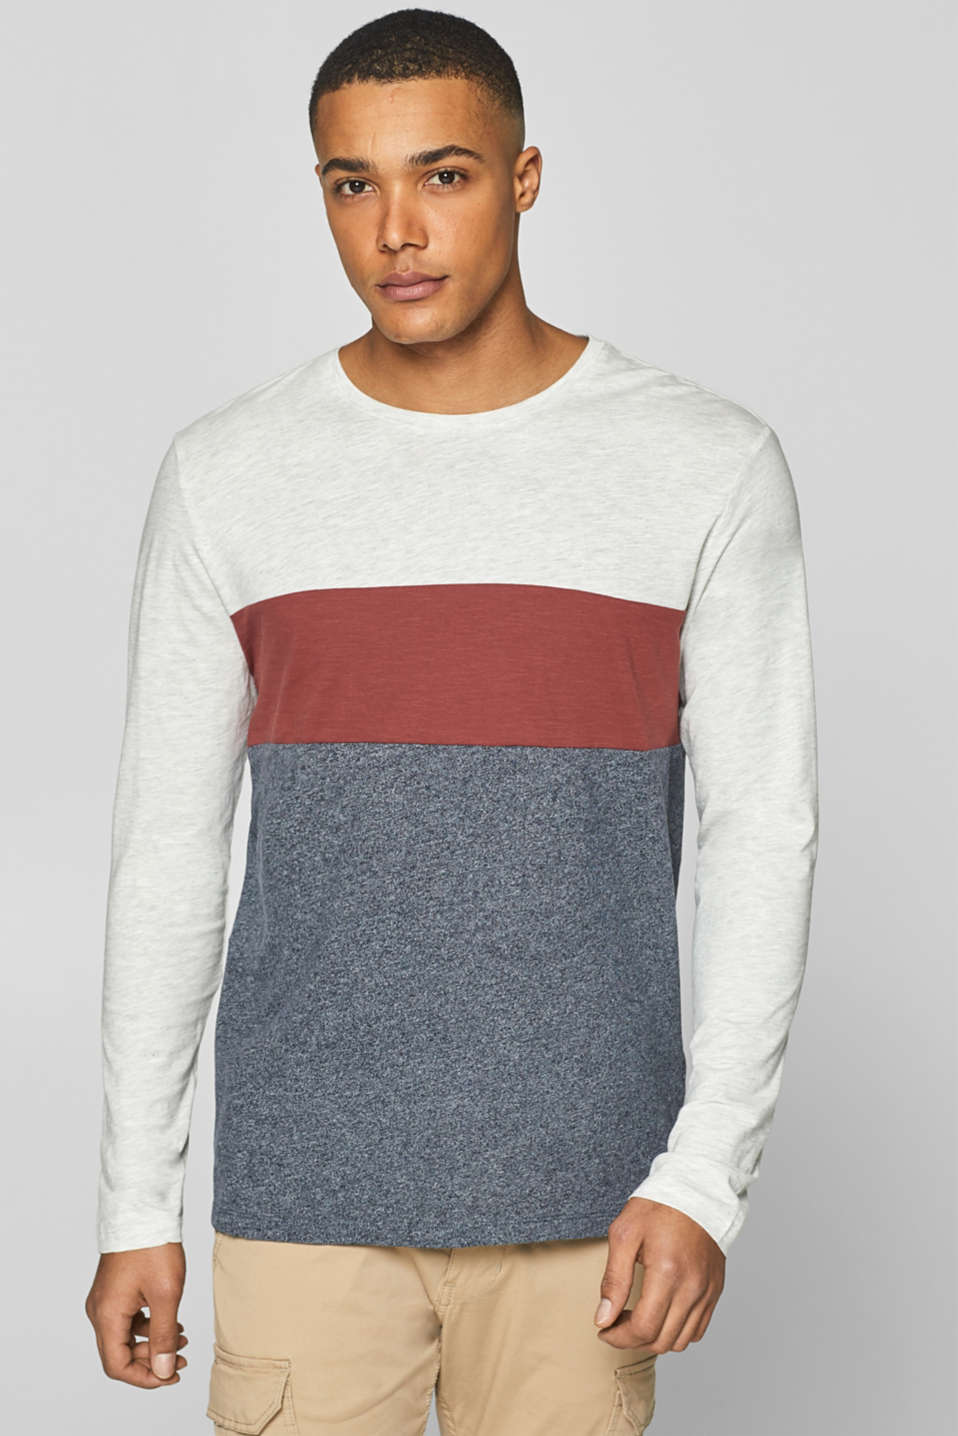 edc - Long sleeve top with block stripes, made of jersey